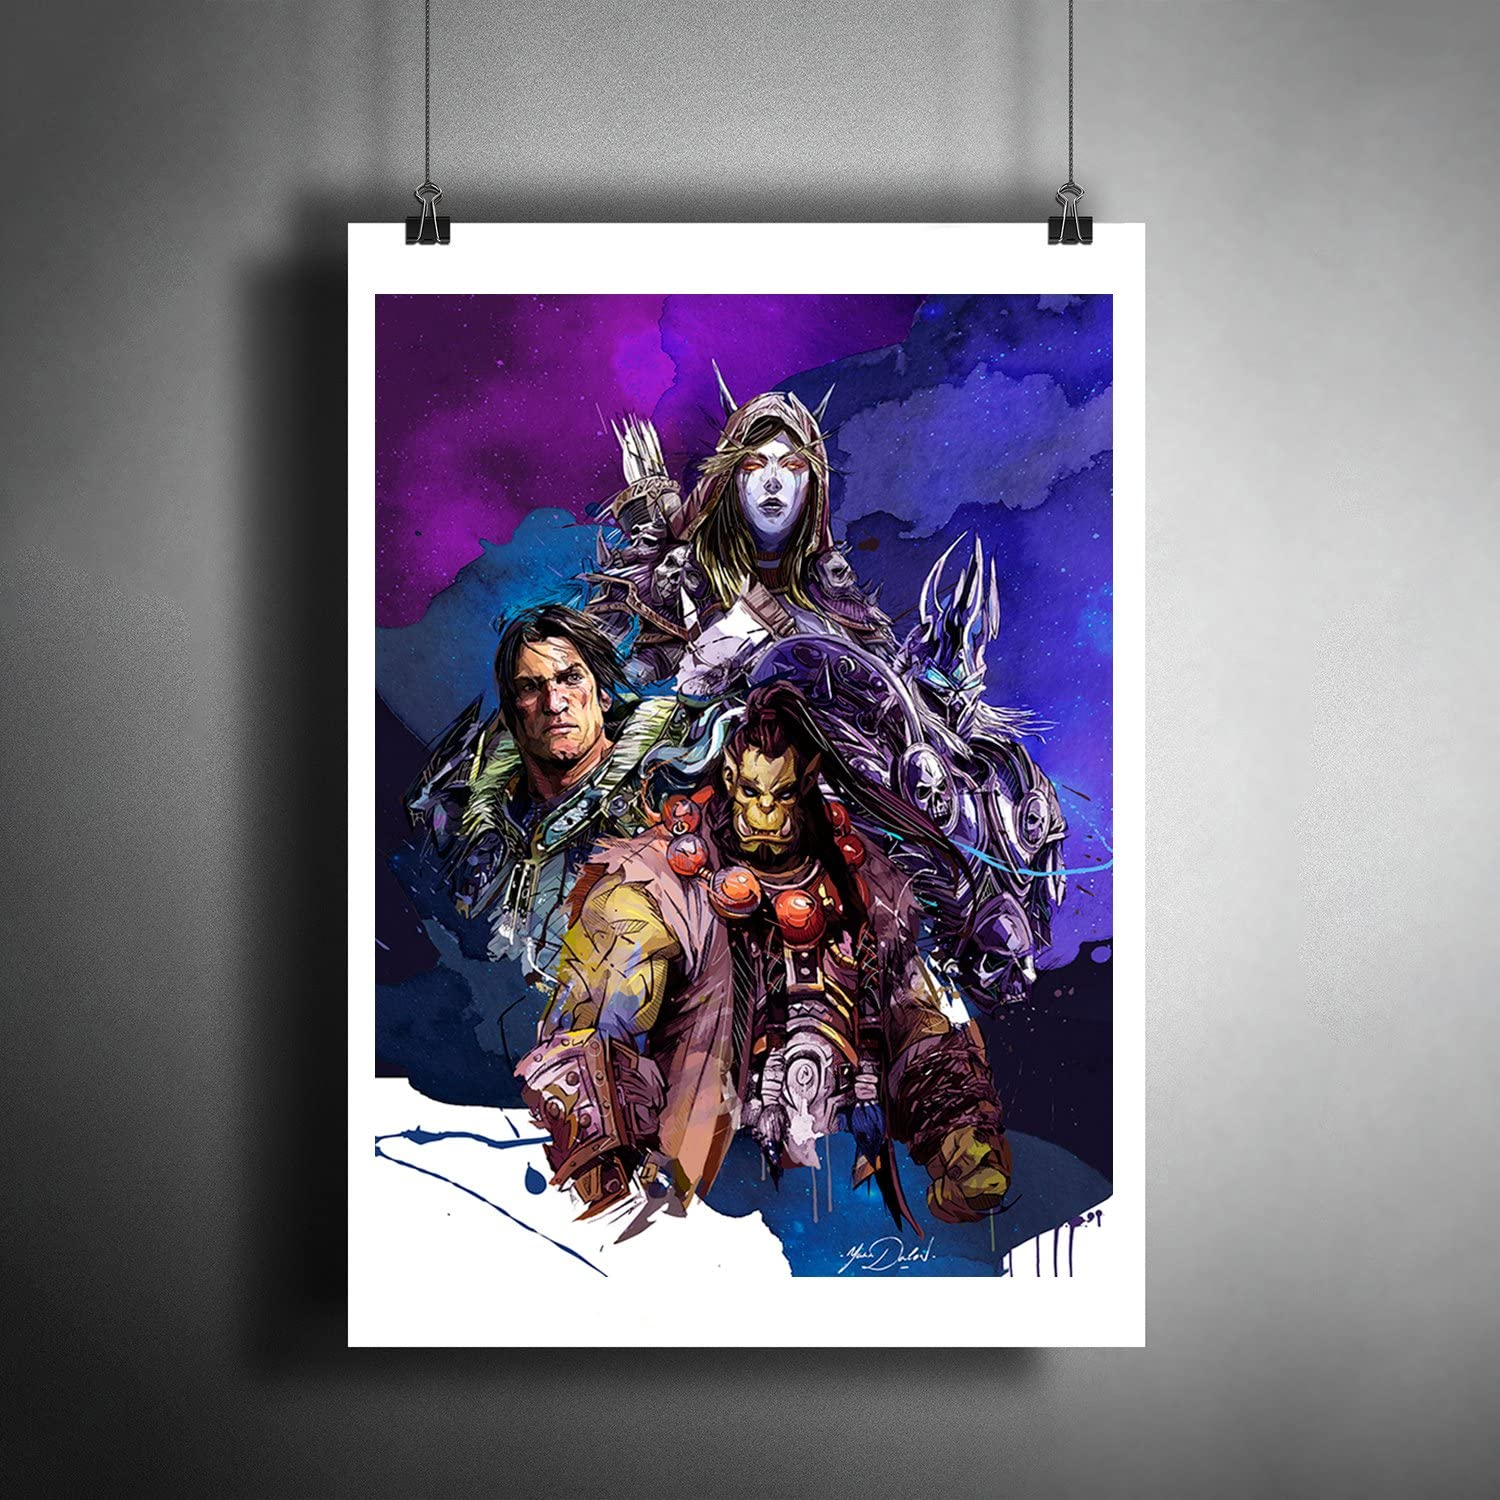 Amazon Com World Of Warcraft 2 Art Poster Photo Print Decor A3 Size 297 420 Mm 11 7 16 5 Inches Posters Prints